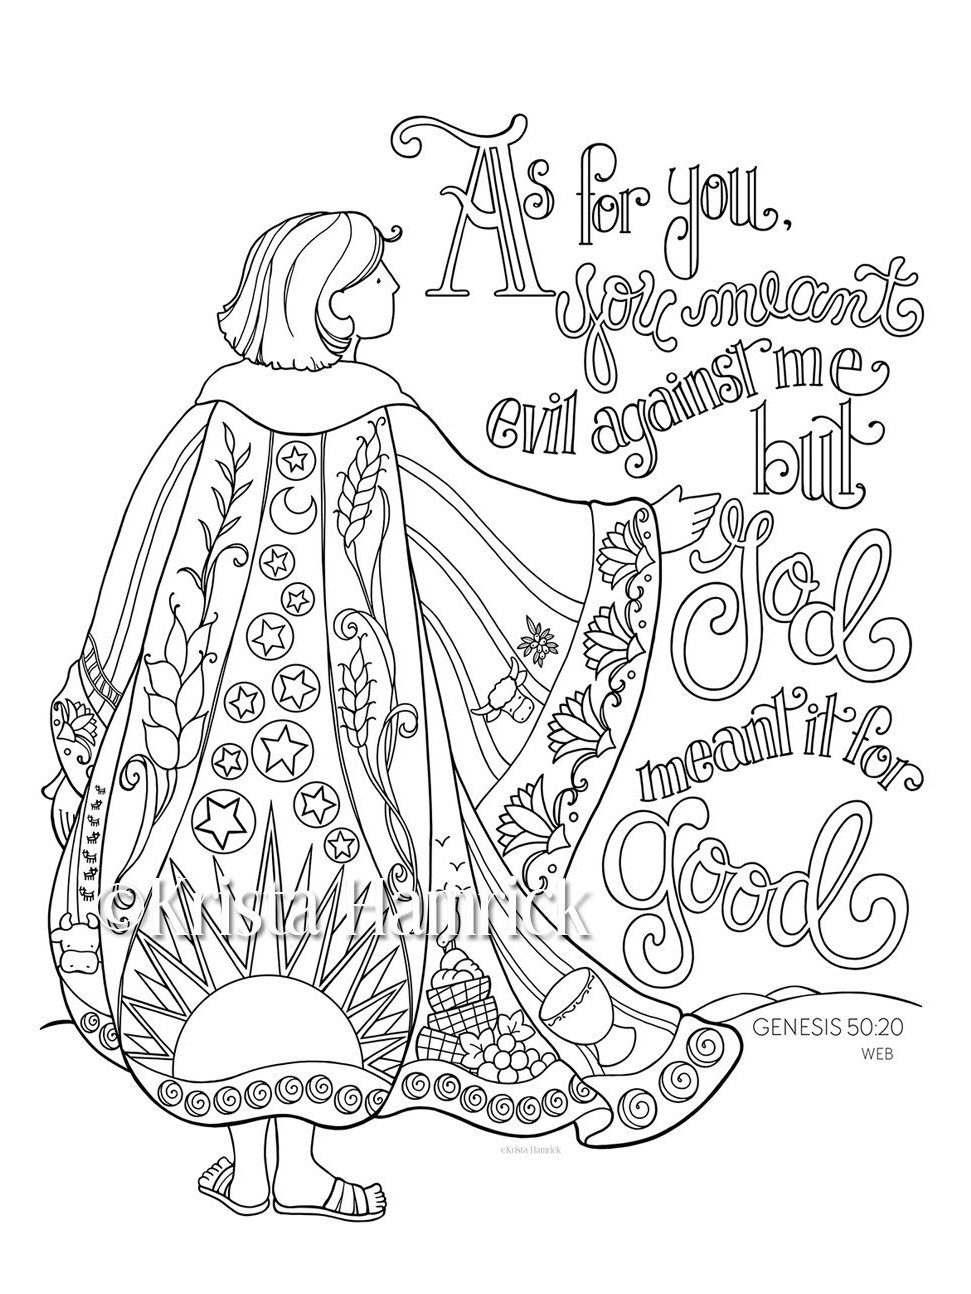 Joseph 39 s coat of many colors coloring page 8 5x11 bible for Bible coloring pages joseph